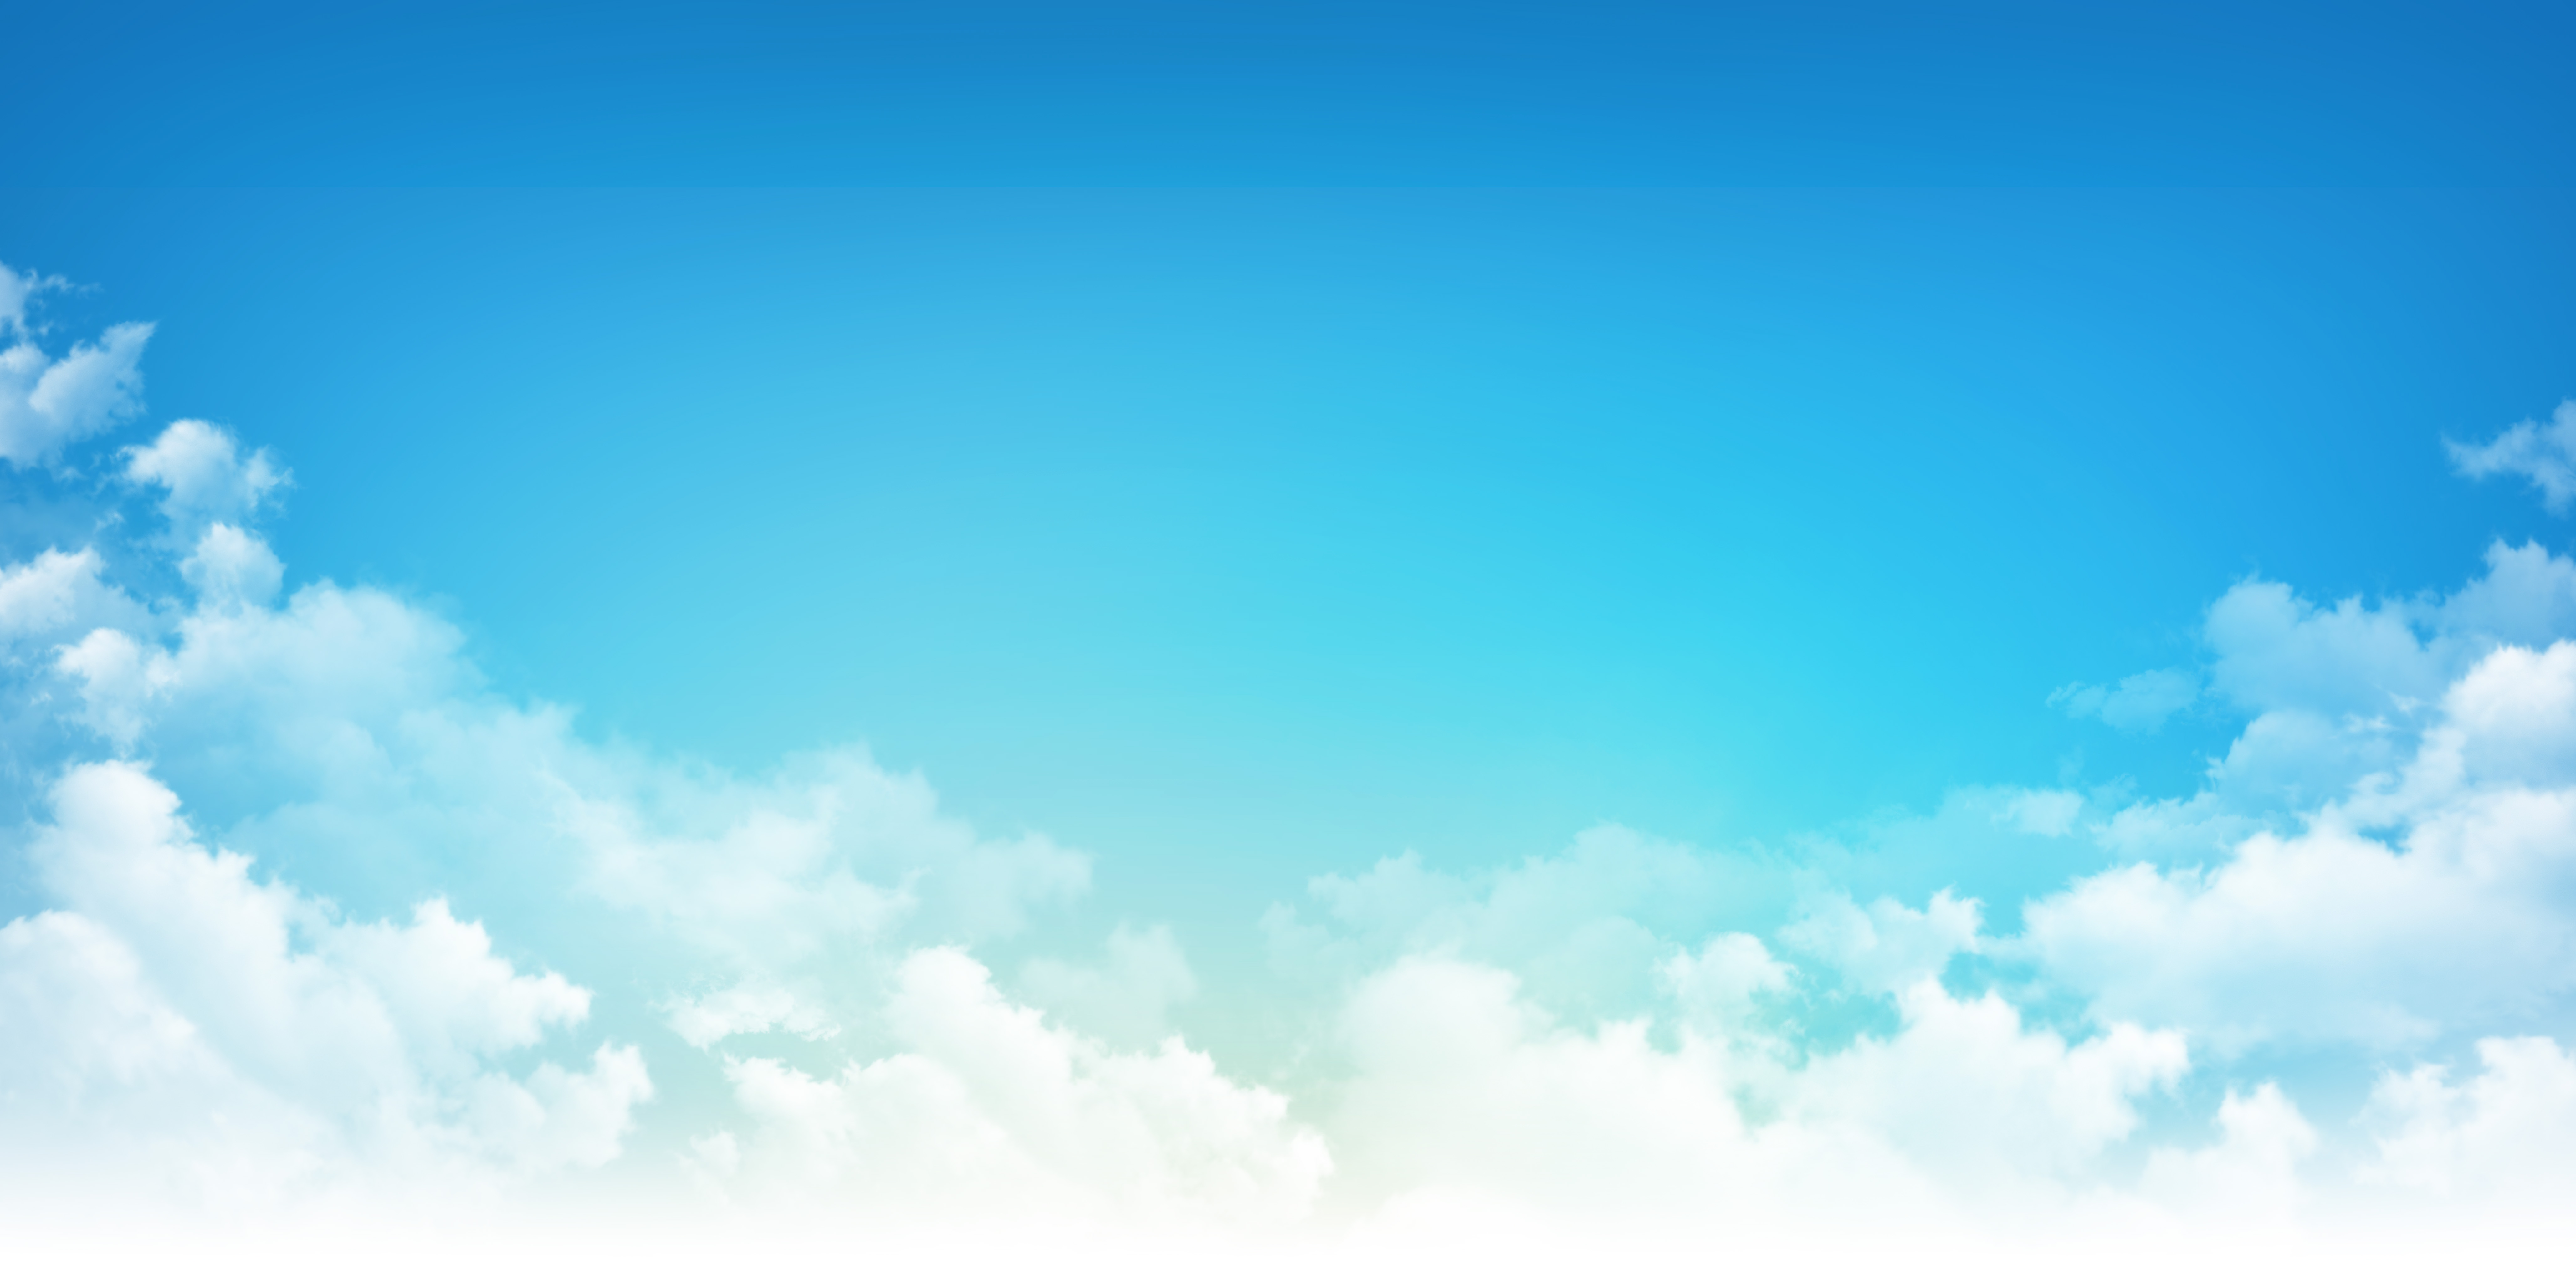 Early blue sky background, sunny light through white clouds